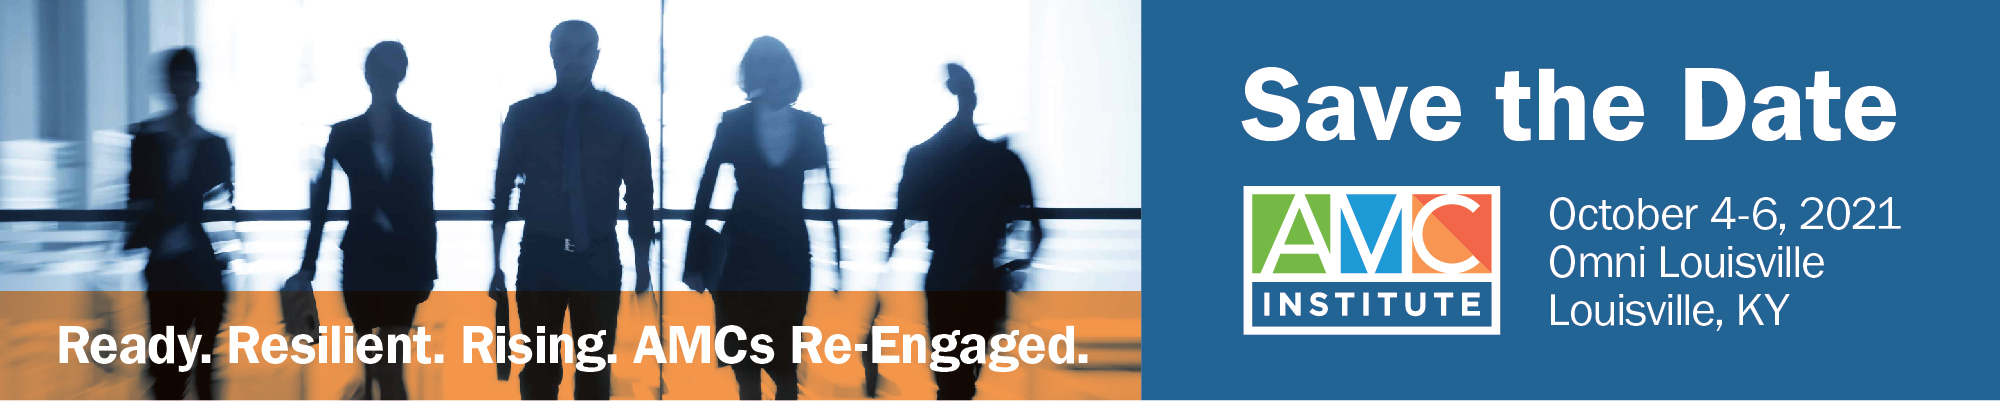 AMCI Save the Date Re-Engaged